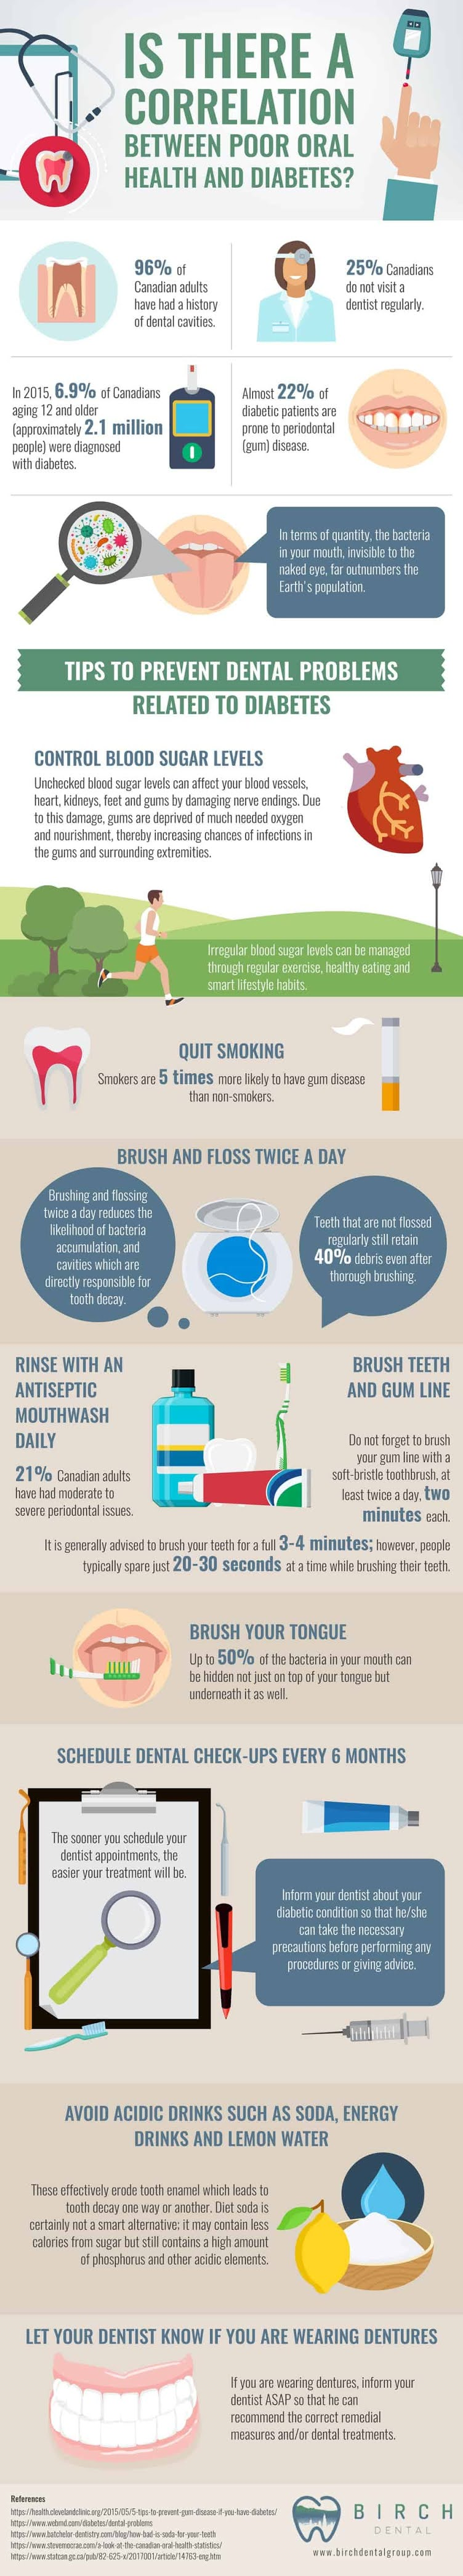 Is There A Correlation Between Poor Oral Health And Diabetes #infographic